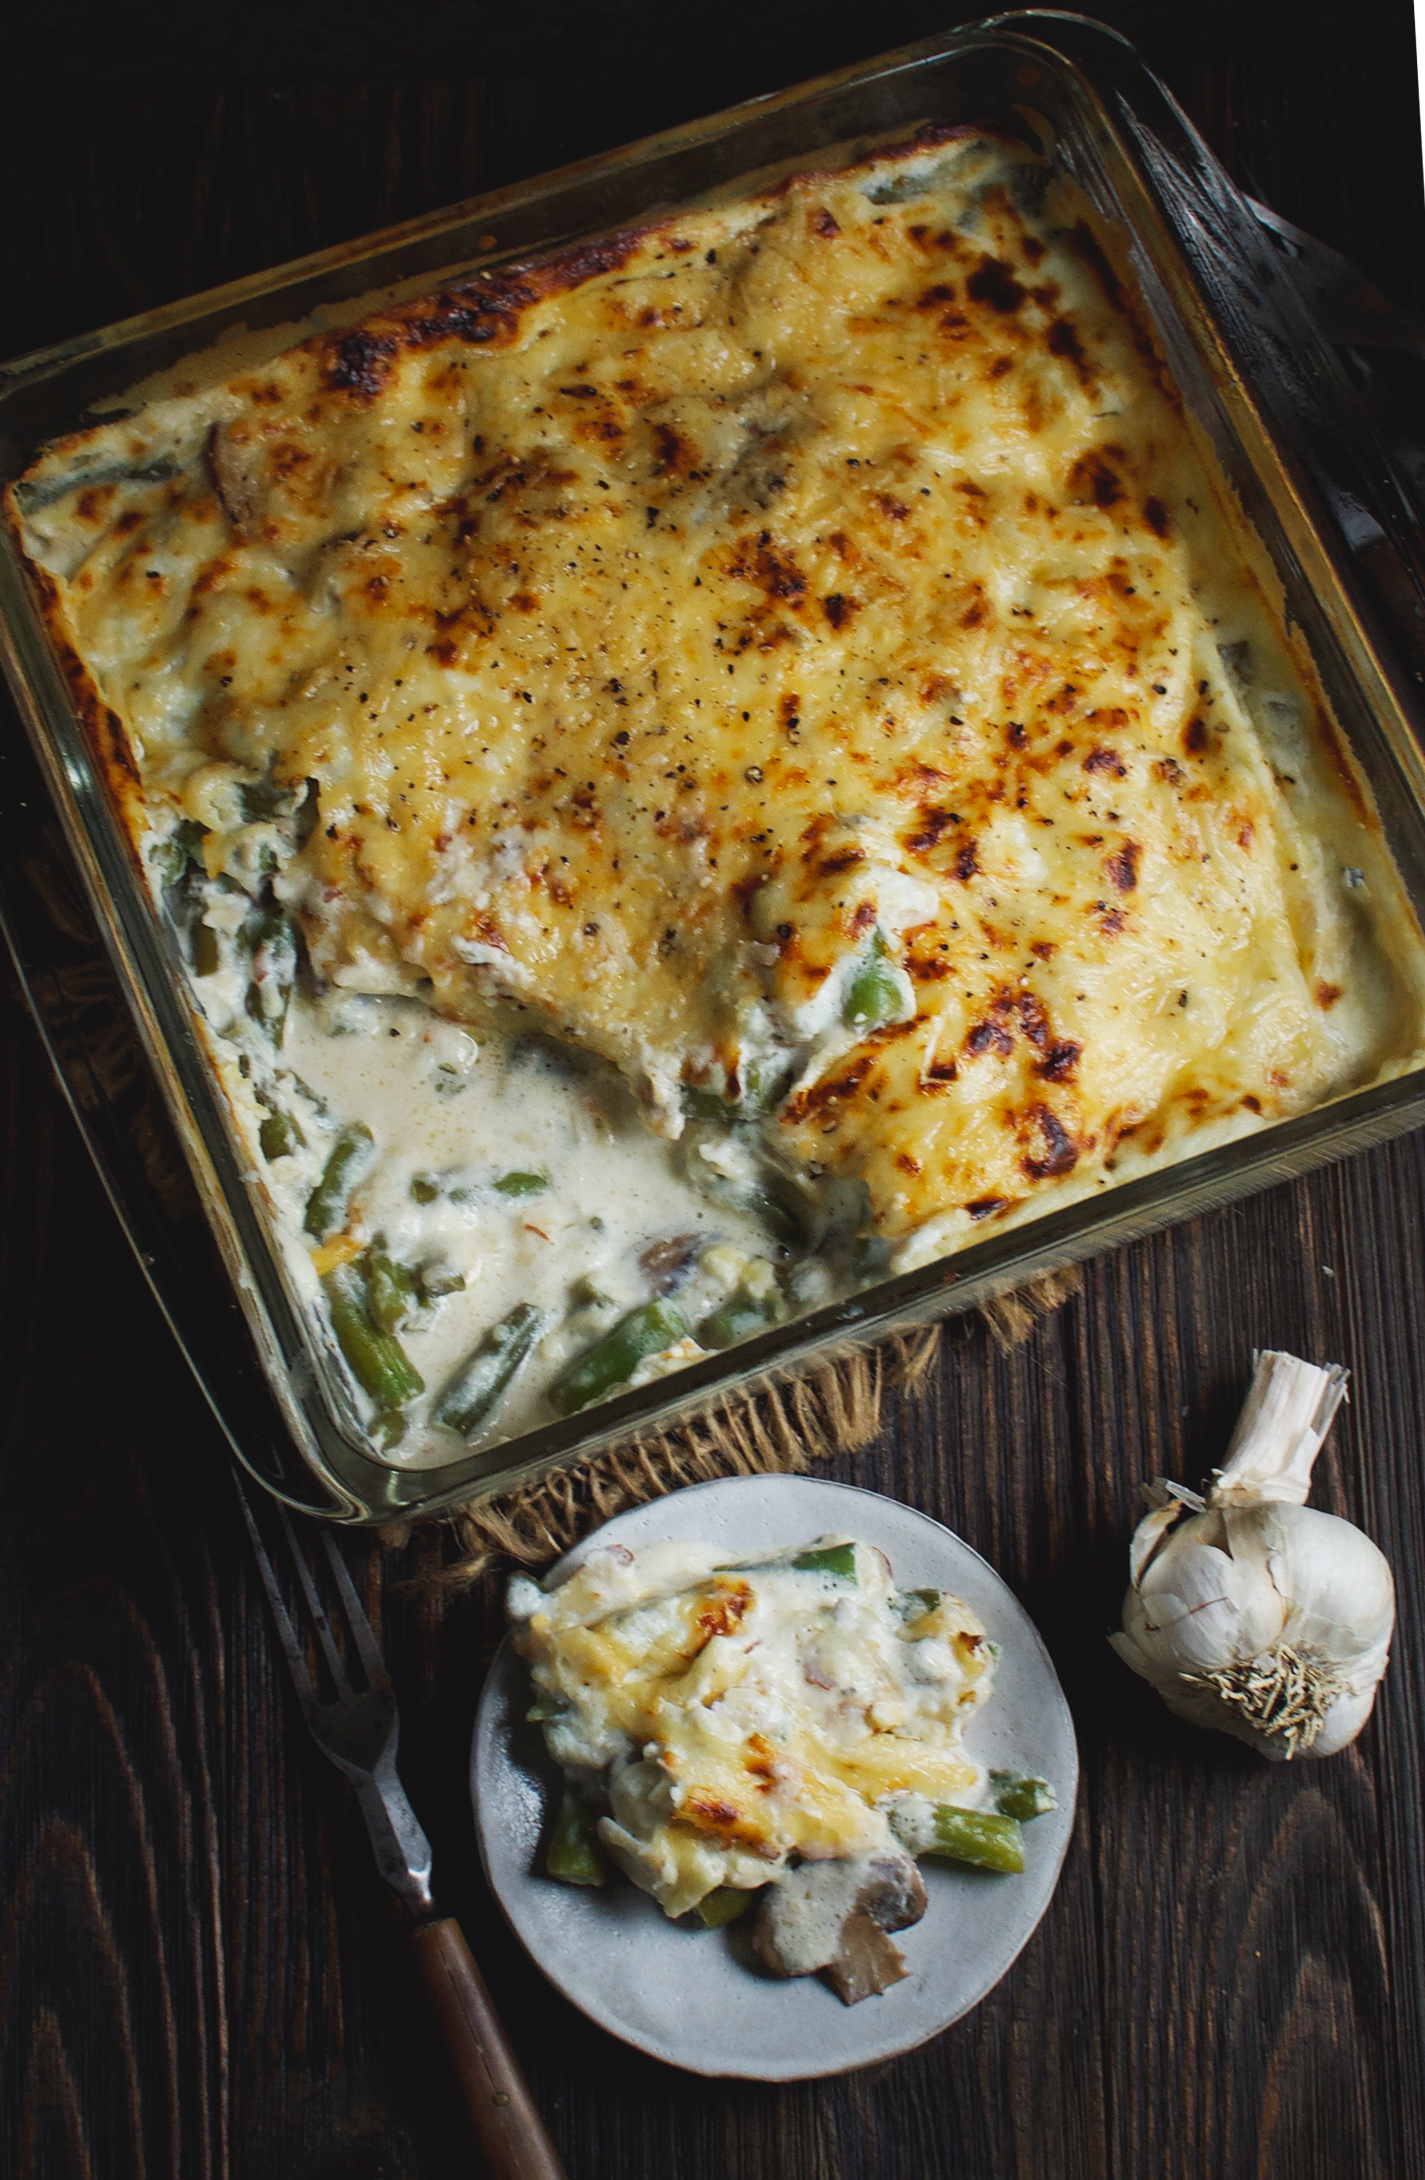 Low-Carb Green Bean and Mushroom Casserole on a plate. Overhead view